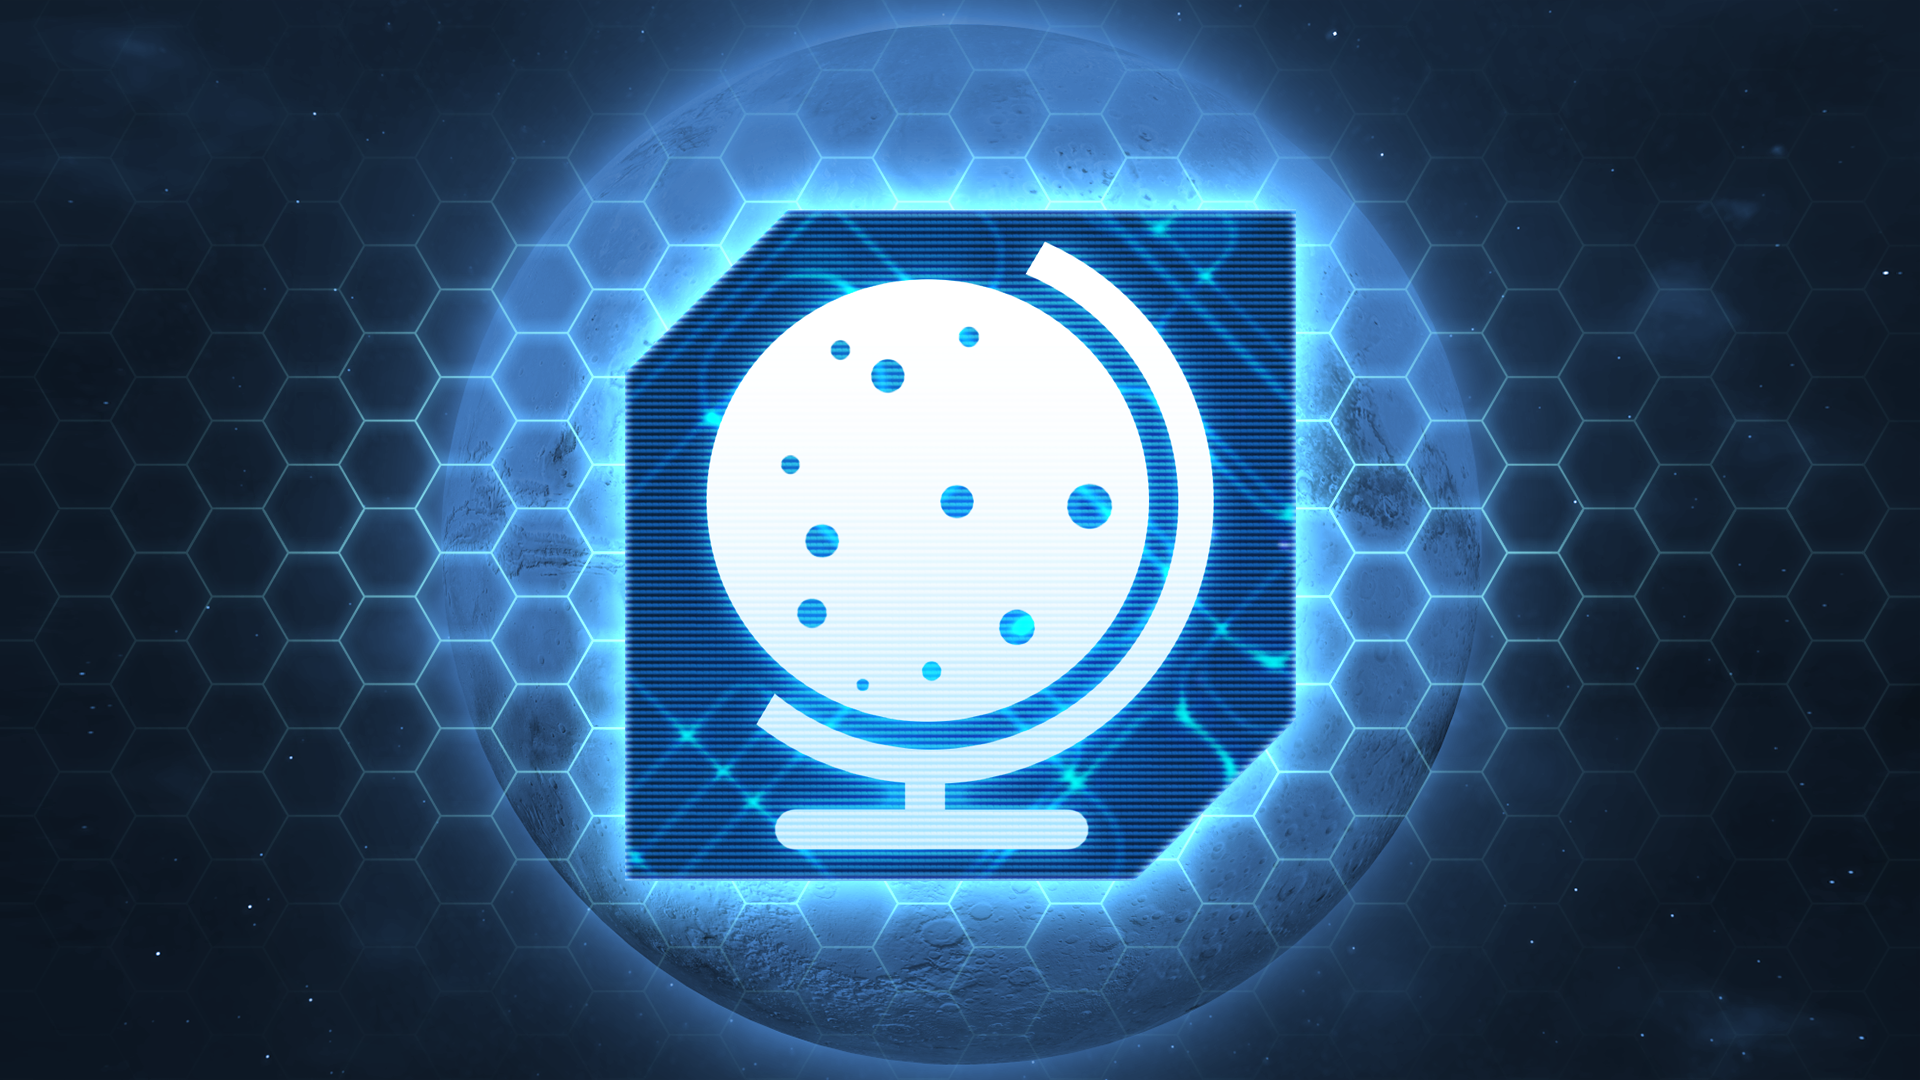 Icon for Creator of Worlds